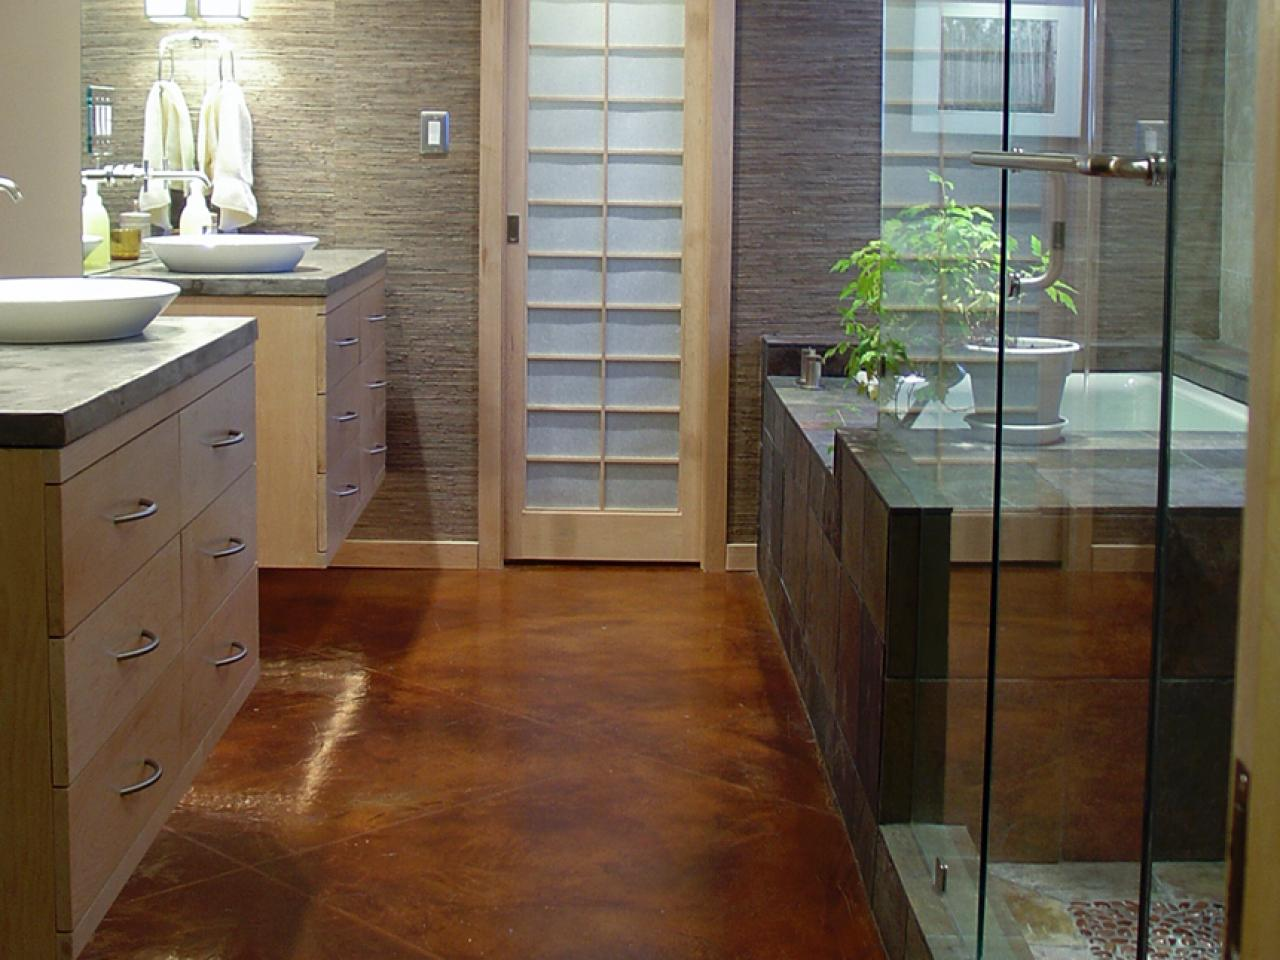 Fantastic Design Of The Bathroom Areas Added With Brown Marble Floor Ideas Added With Grey Wall And Young Brown Wooden Cabinets